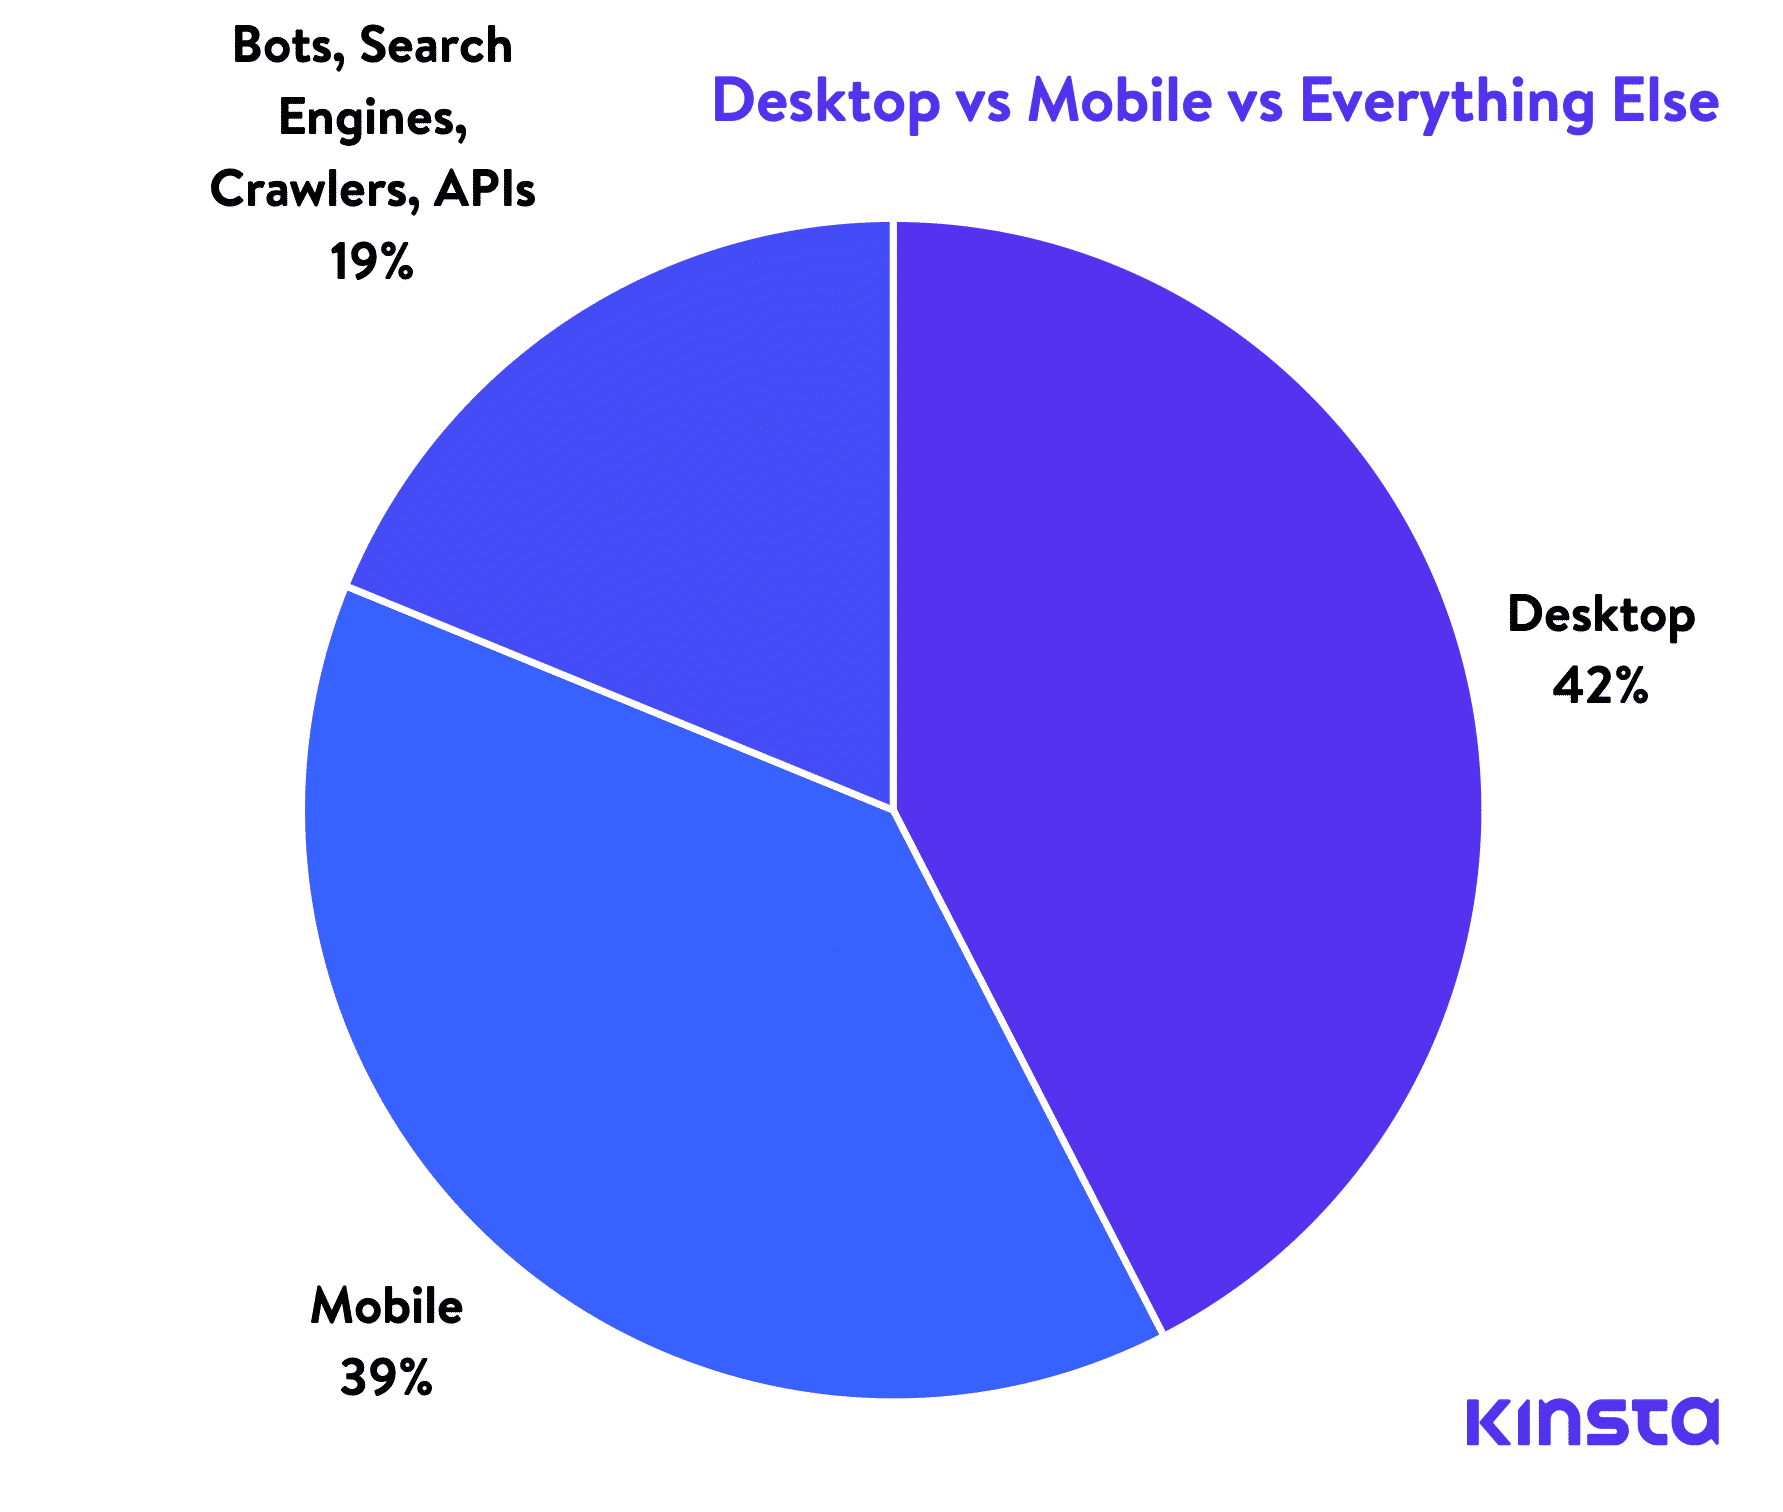 Desktop vs Mobile vs Everything Else